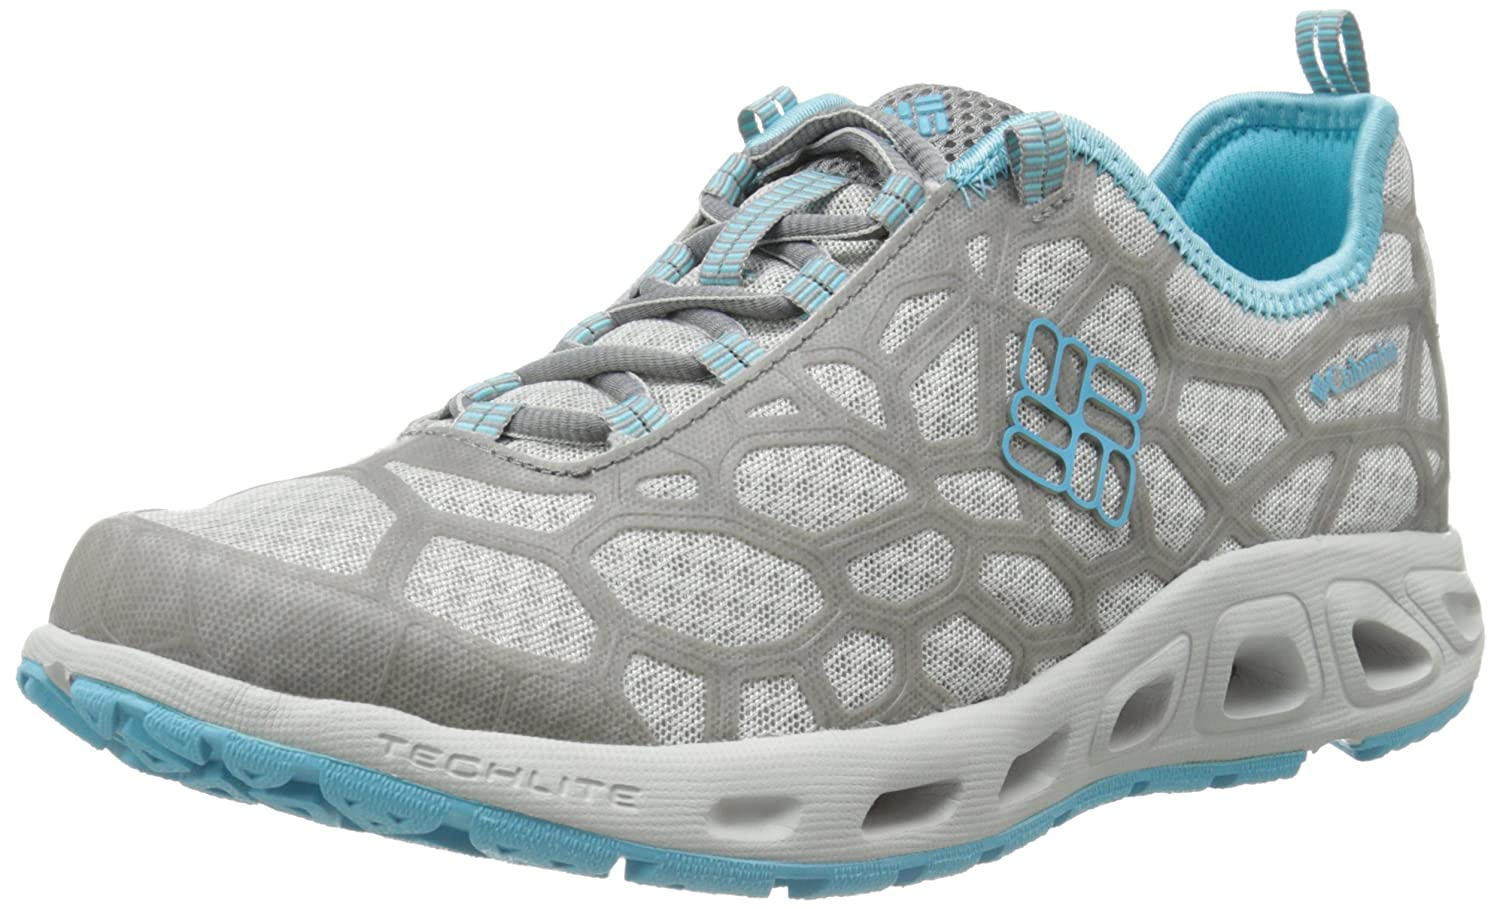 Columbia Women s Megavent Trail Shoe Oyster/Opal Blue 7 B(M) US: Buy Online  at Low Prices in India - Amazon.in